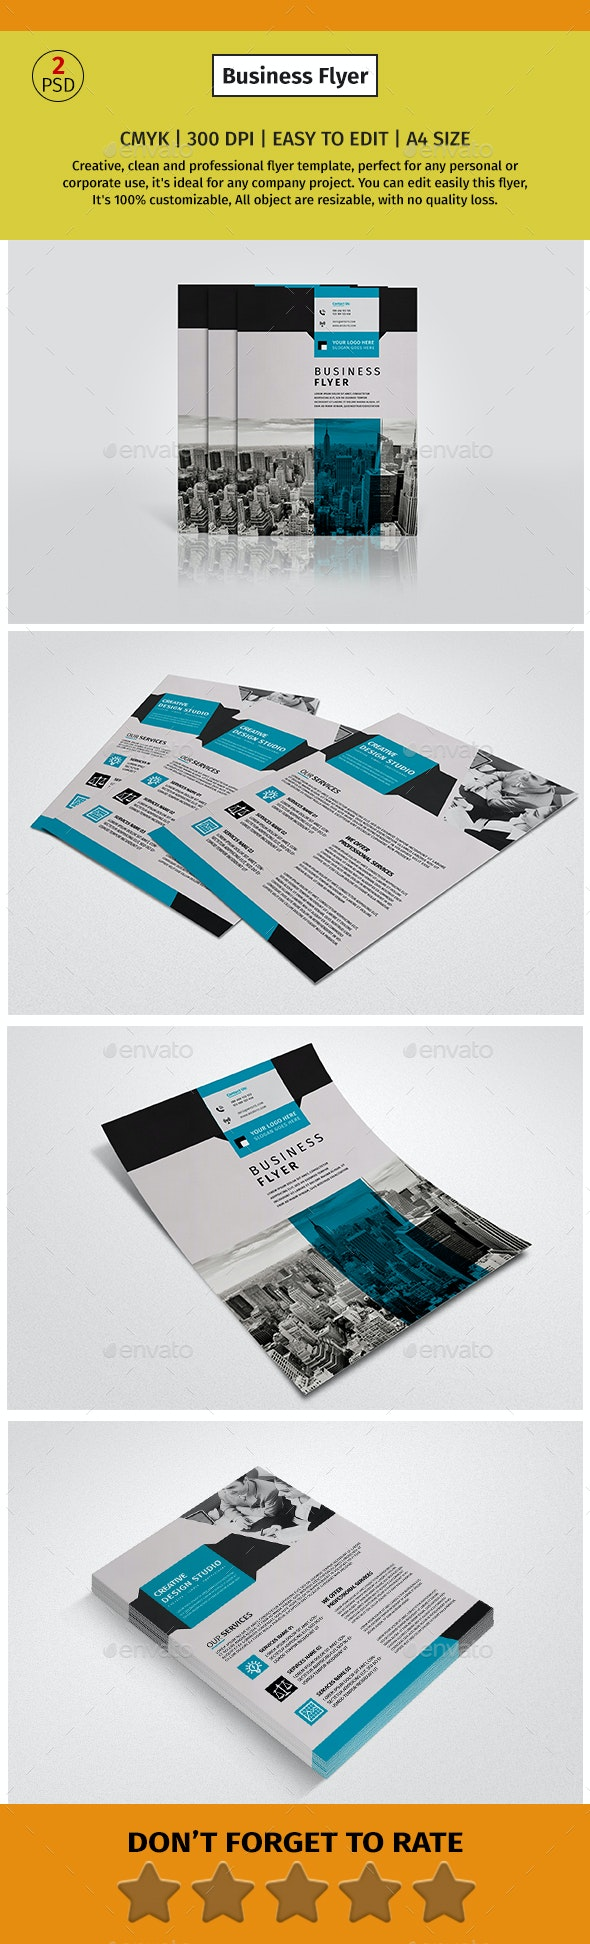 A4 Corporate Business flyer #2 - Corporate Flyers